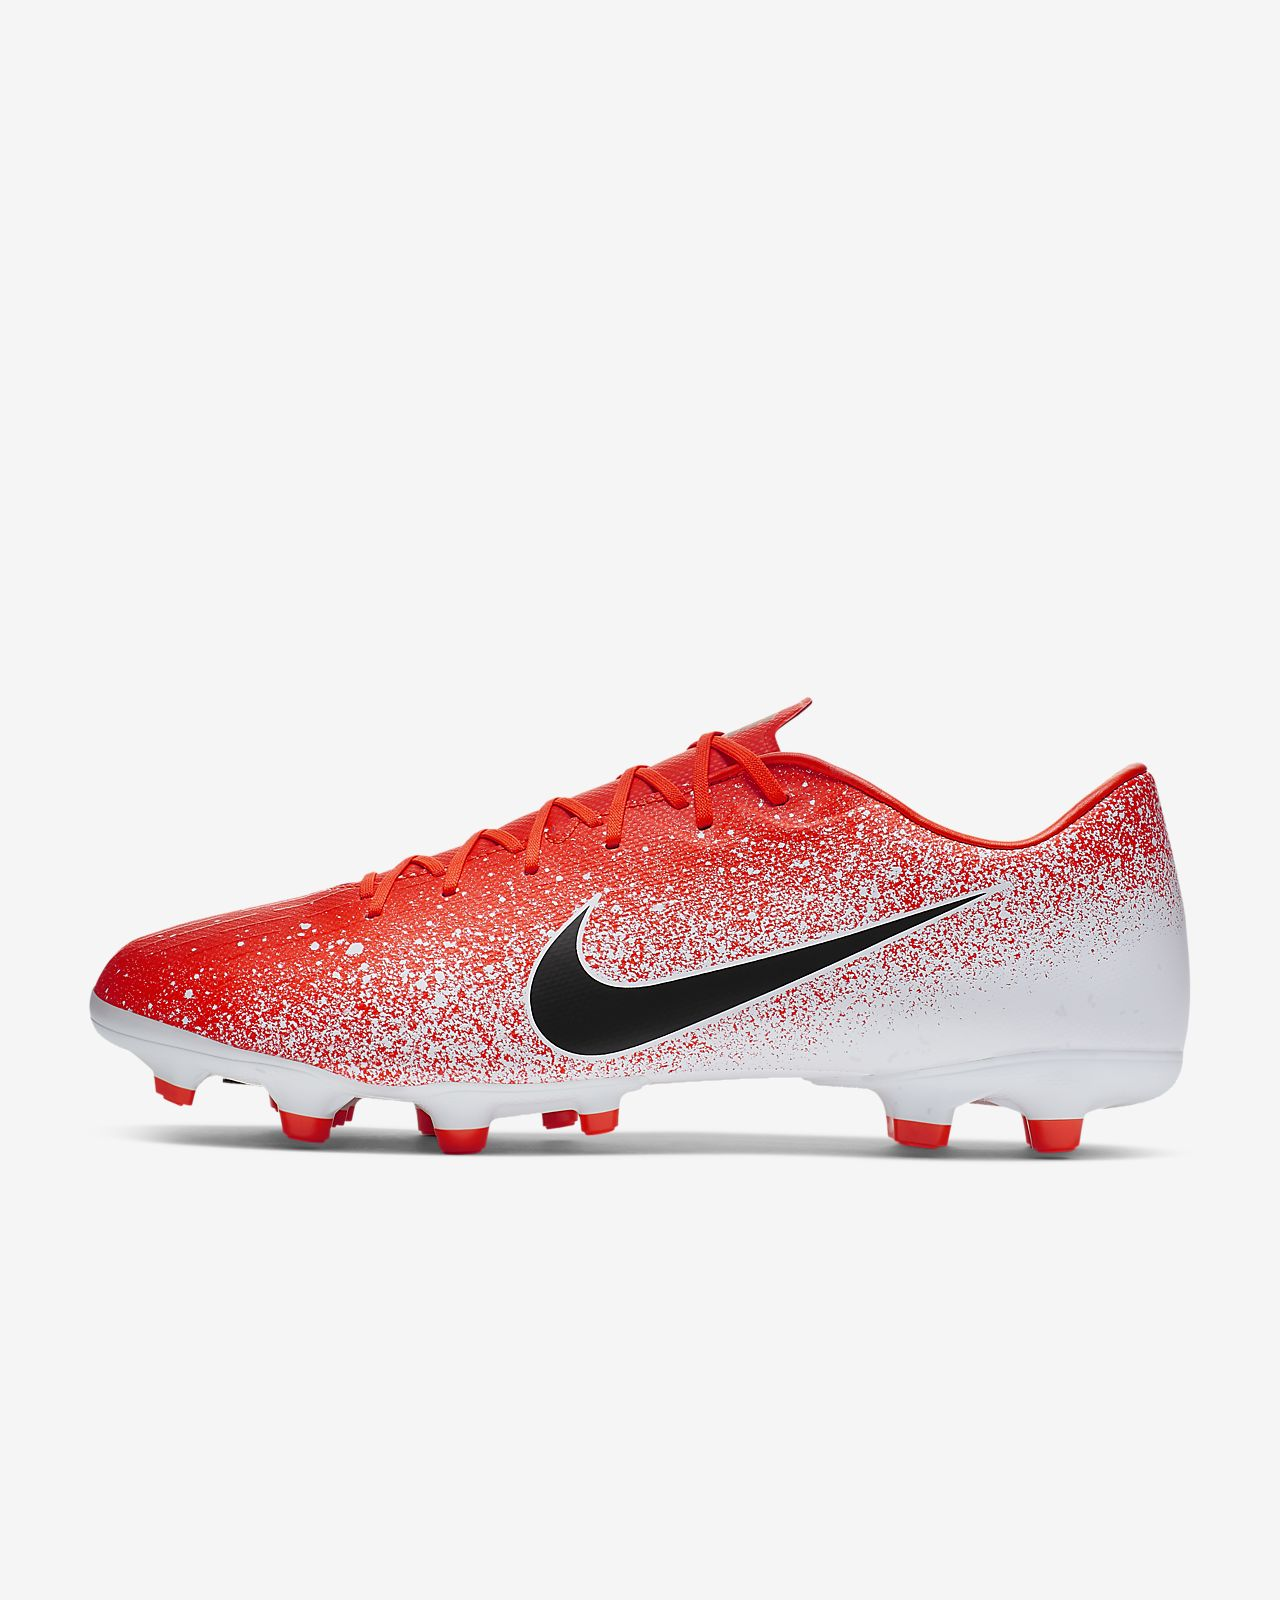 Scarpa da calcio multiterreno Nike Vapor 12 Academy MG